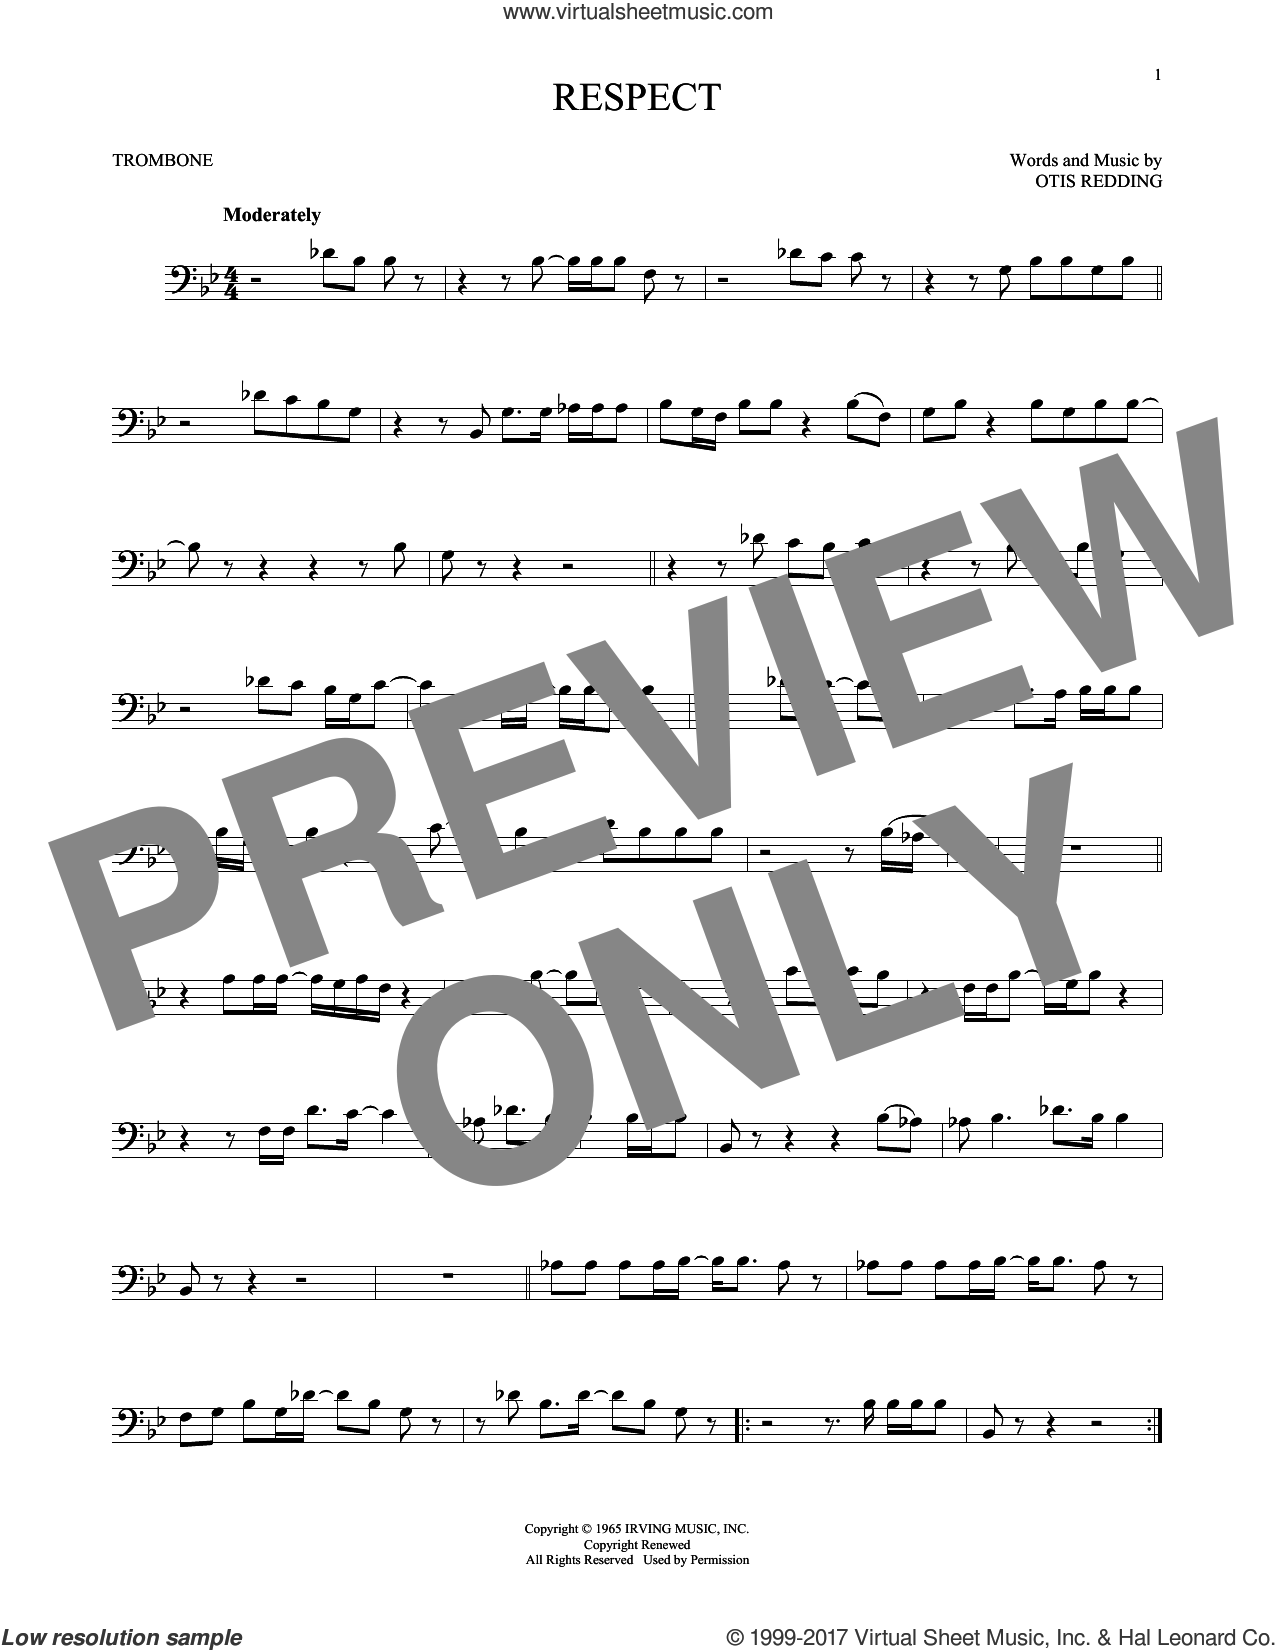 Respect sheet music for trombone solo by Aretha Franklin and Otis Redding, intermediate skill level